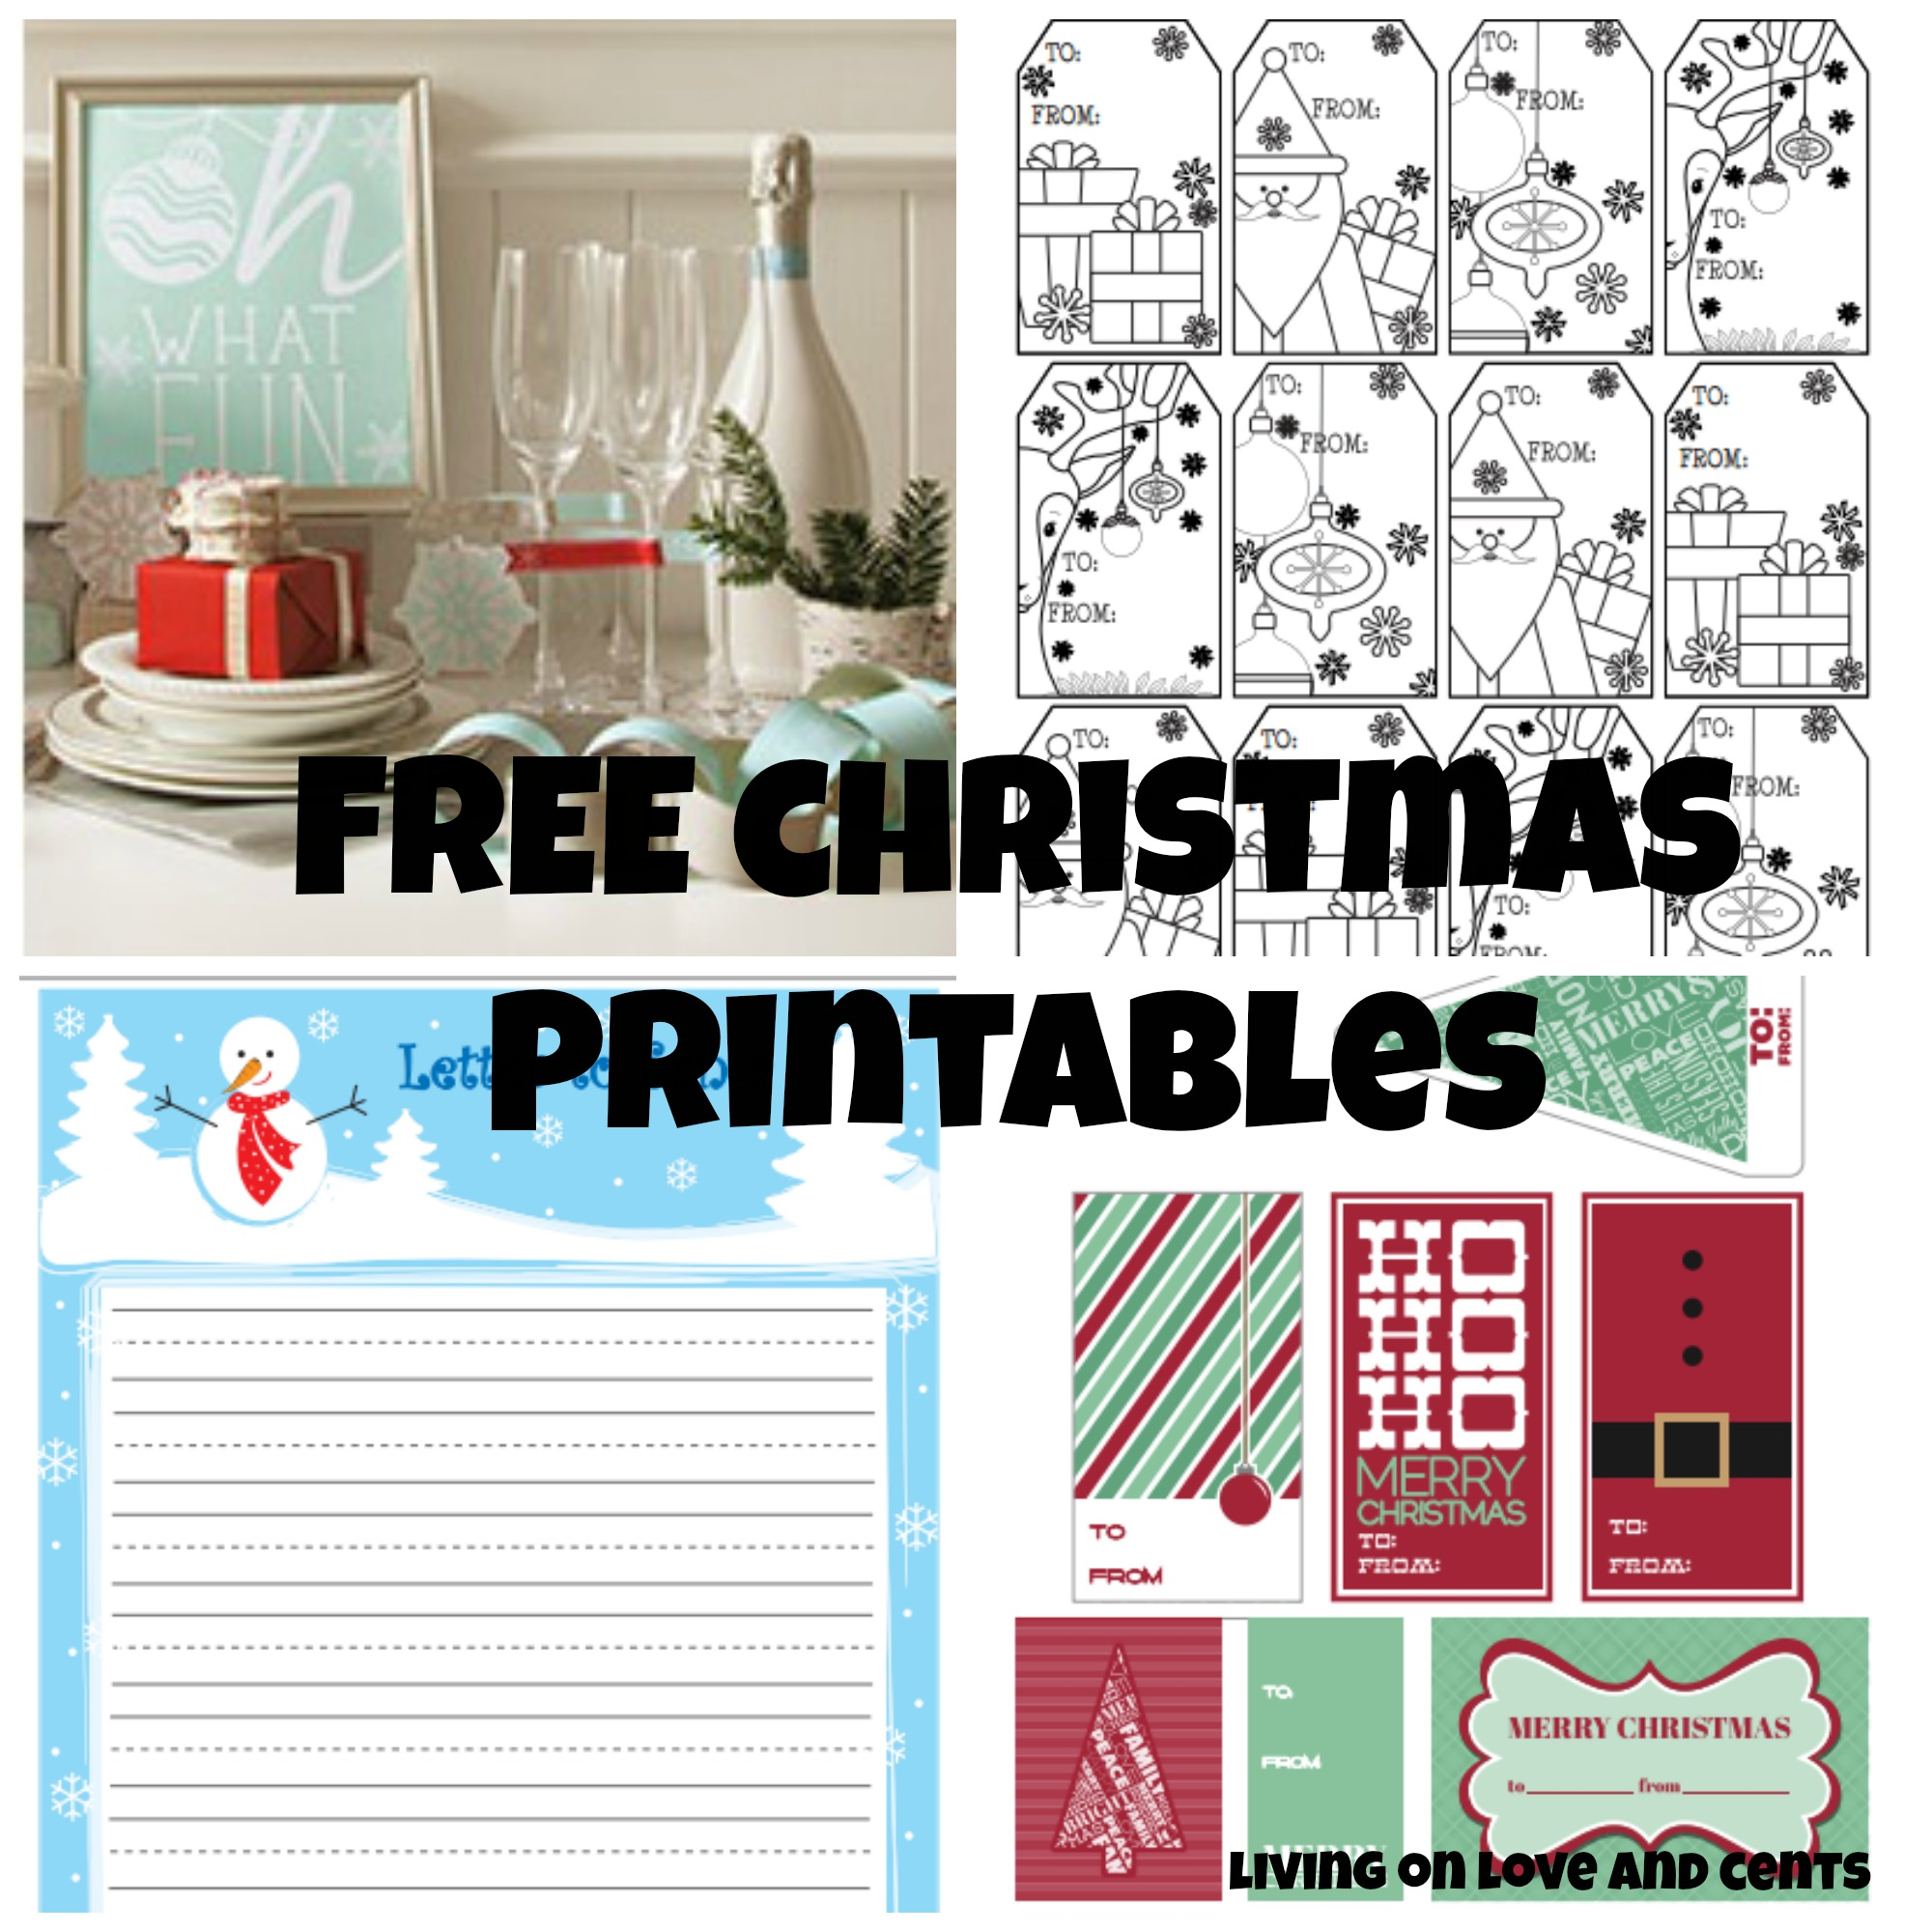 Free Christmas Printables Gift Tags Party Decor And Letter To Santa